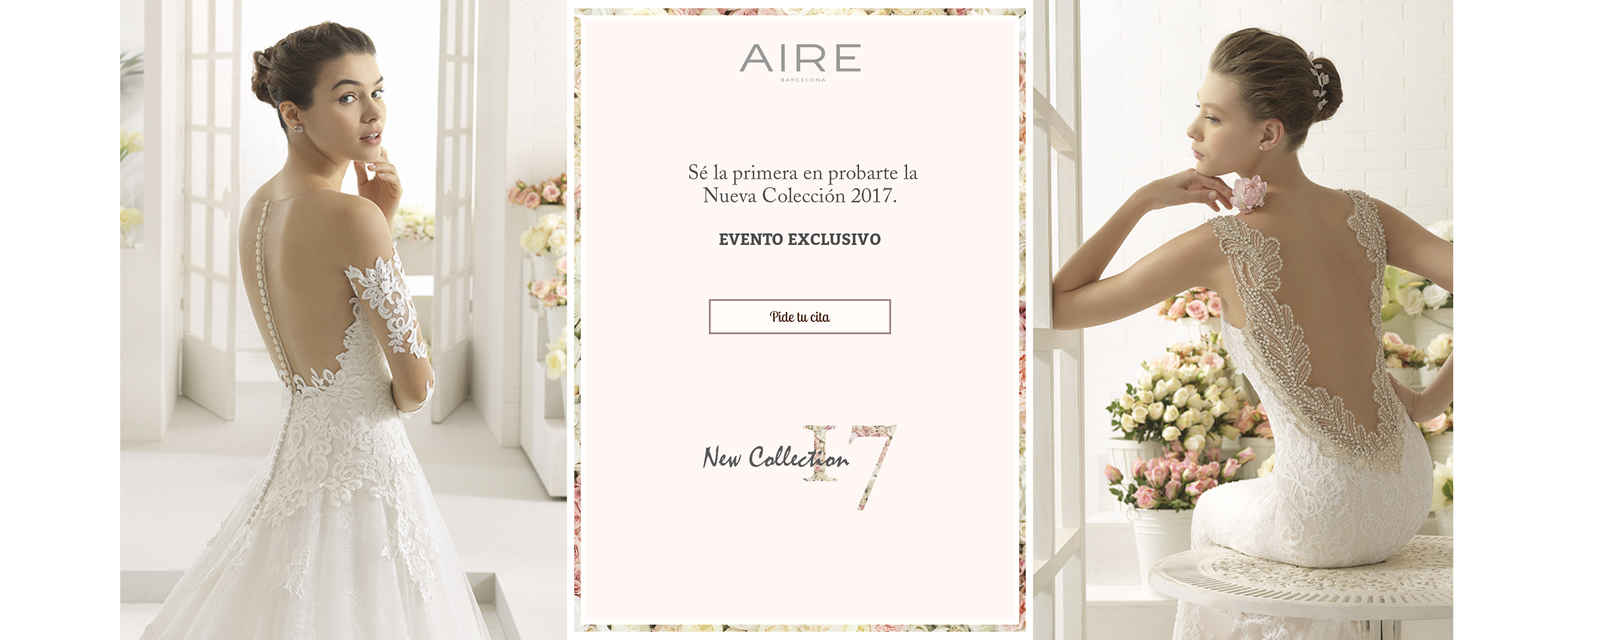 aire-11